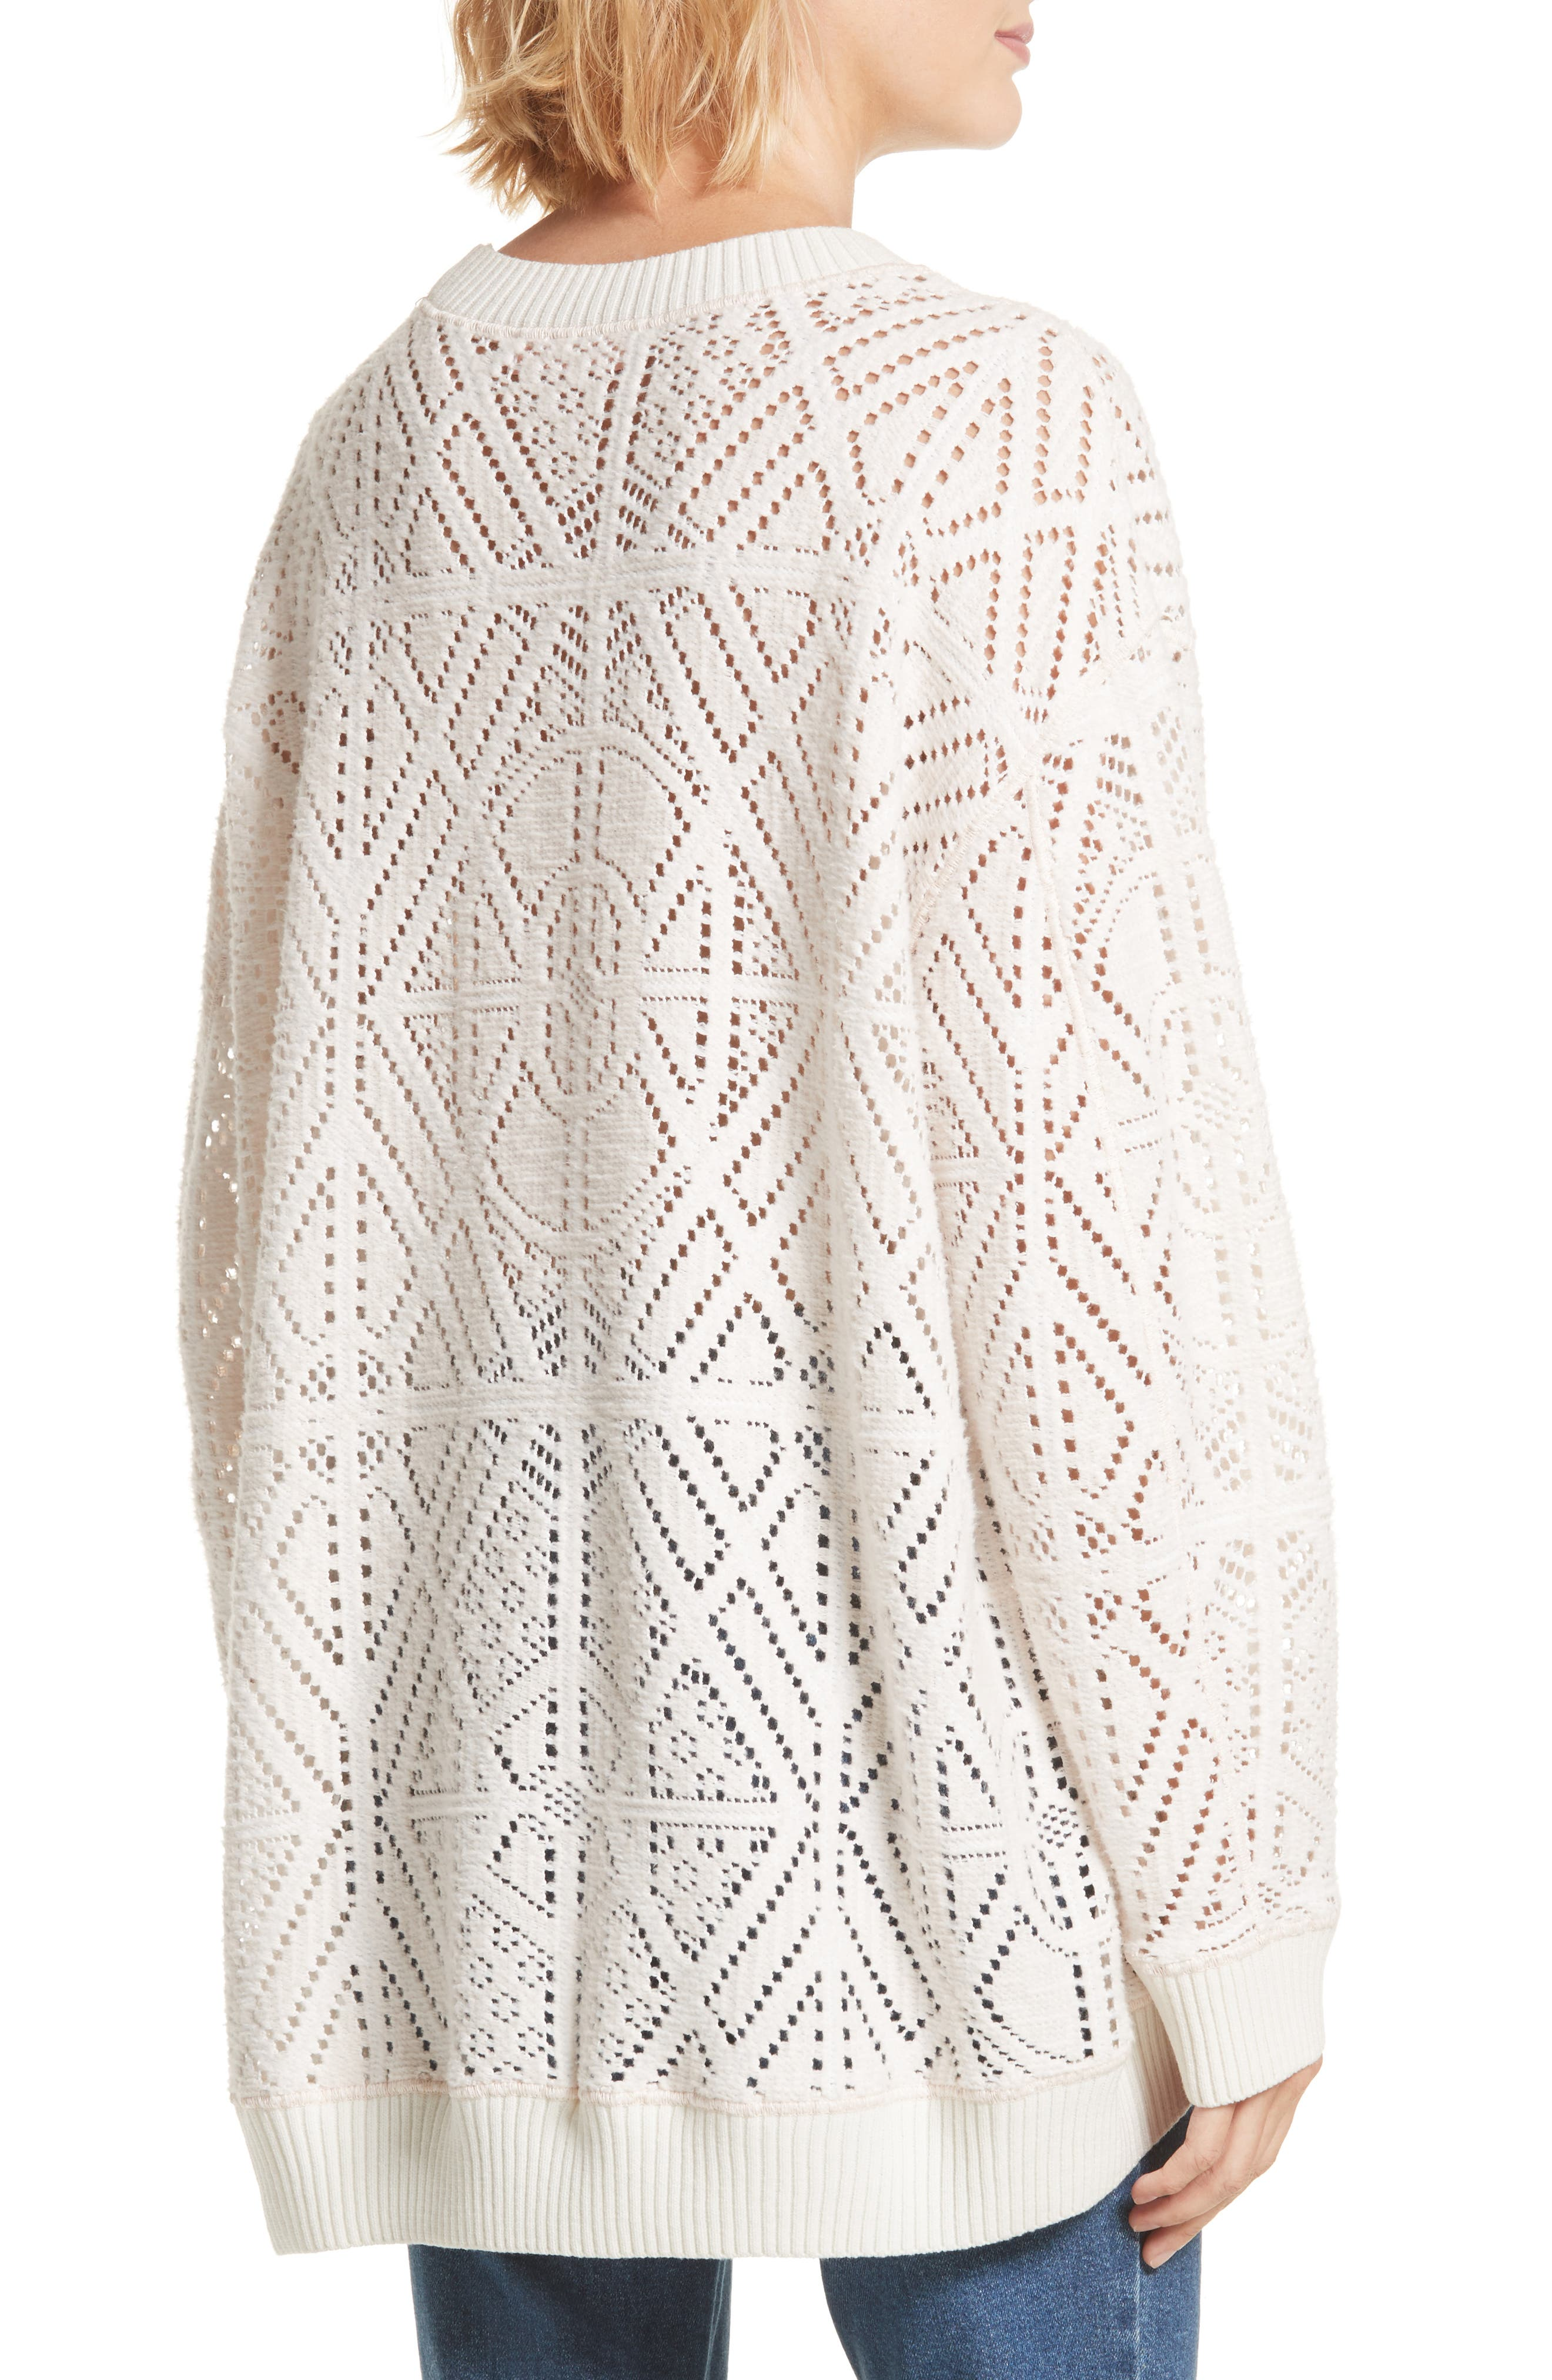 Lace Knit Sweater,                             Alternate thumbnail 2, color,                             901